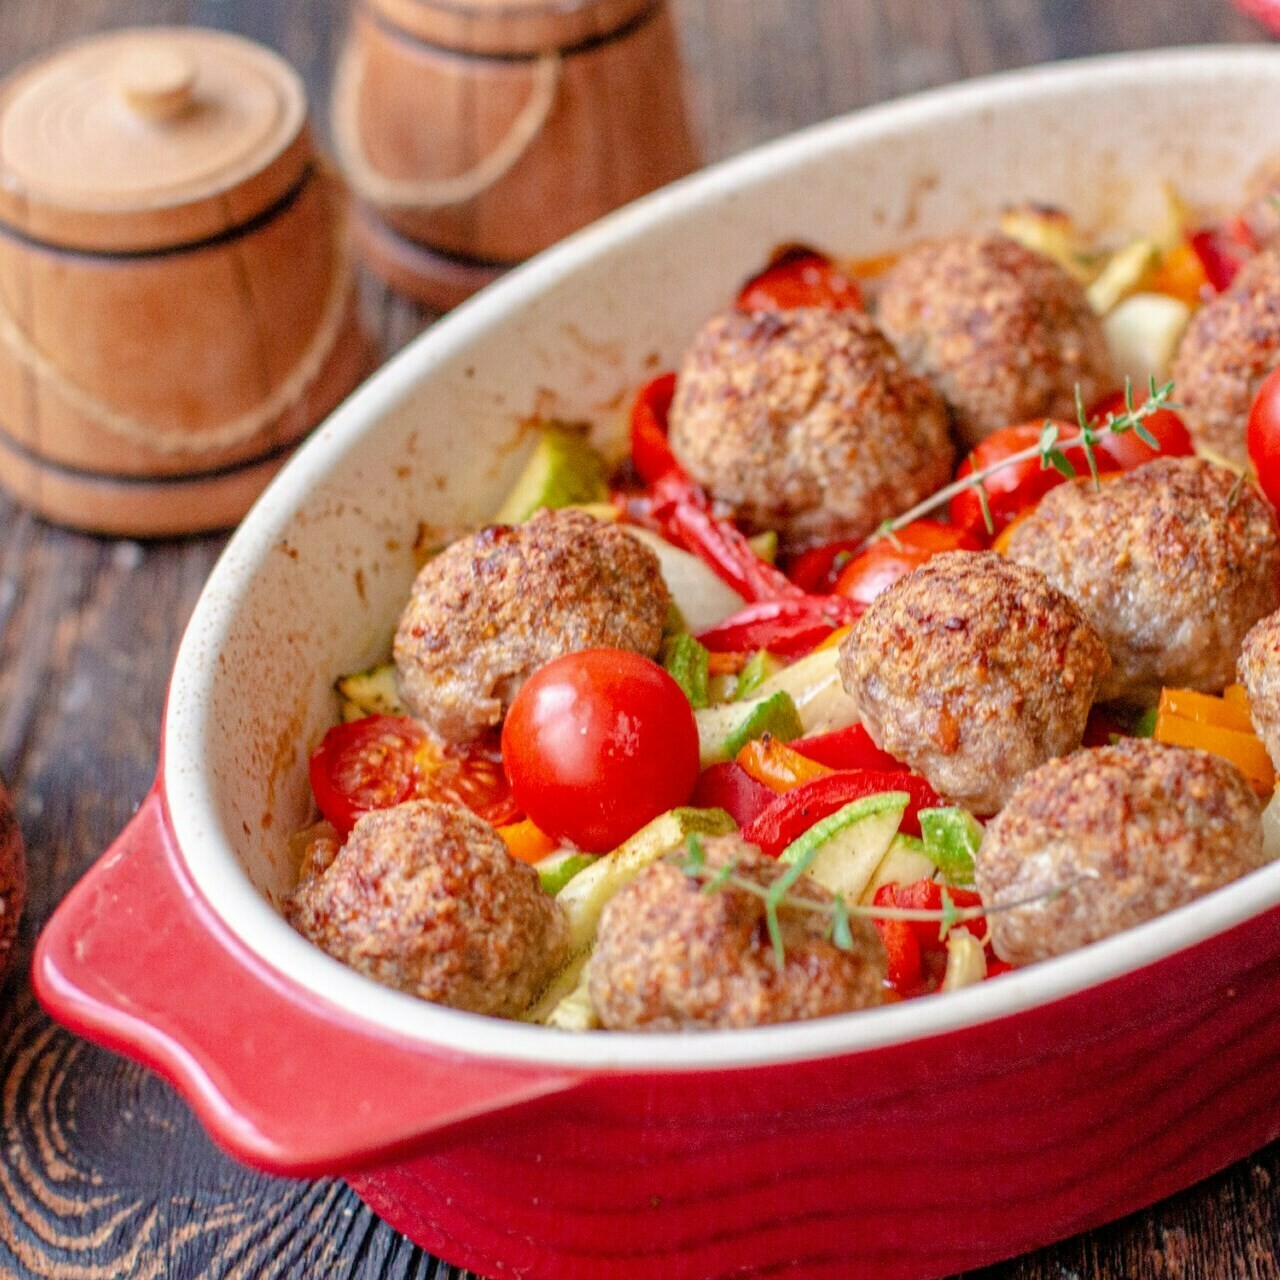 MEATBALLS WITH RICE (CHICKEN)